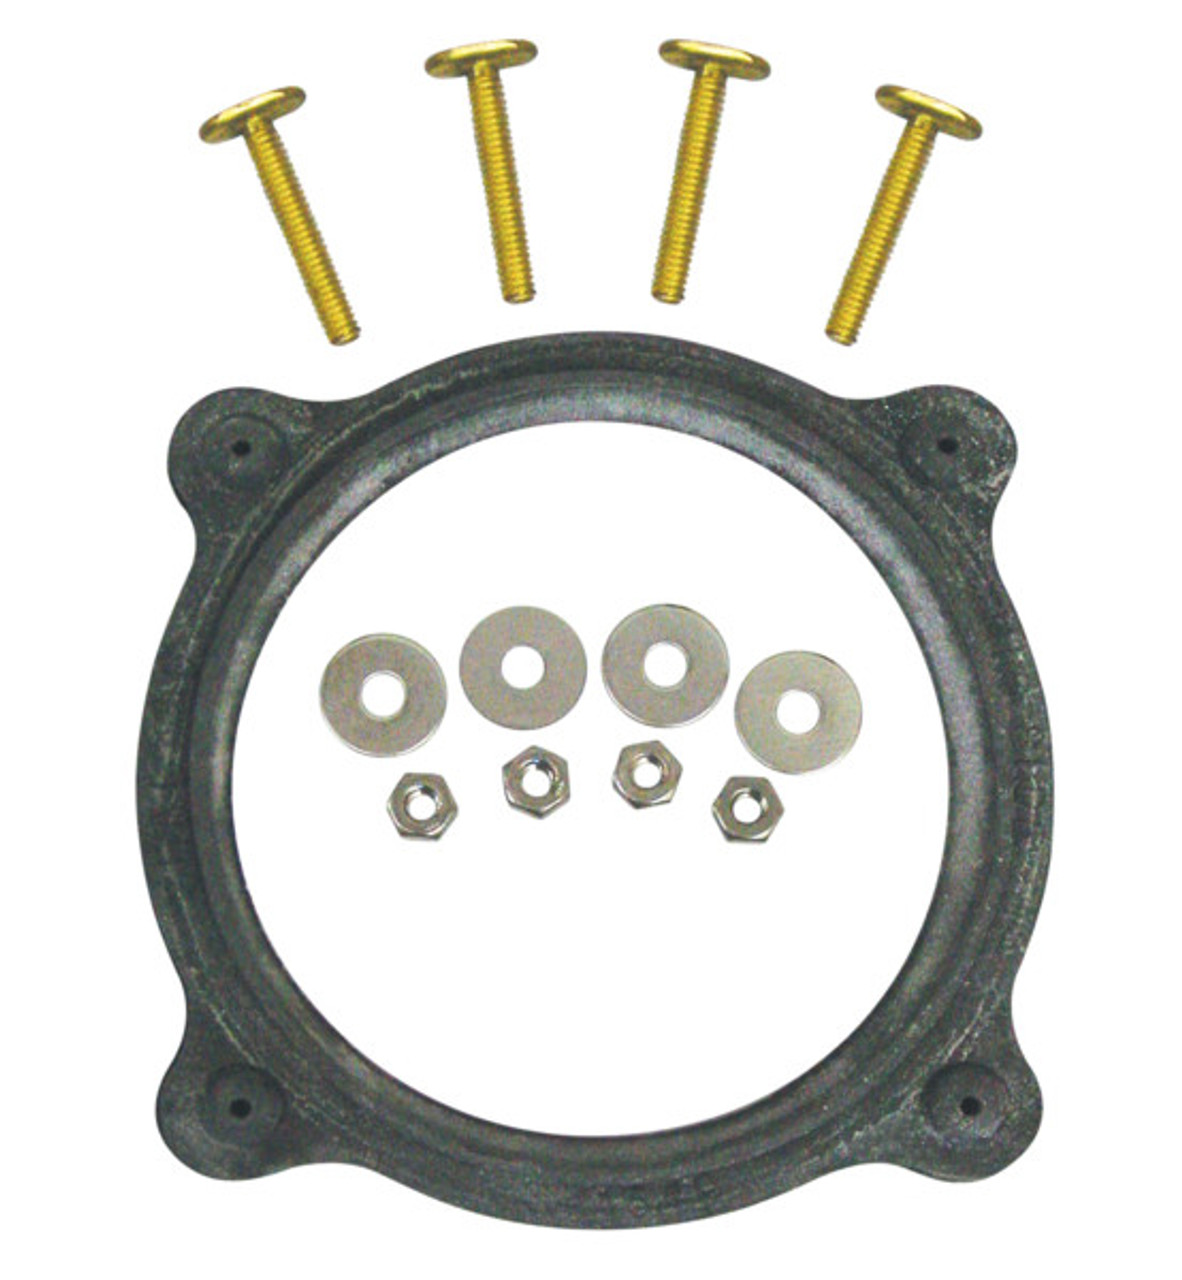 This floor flange kit contains the floor flange seal and hardware.